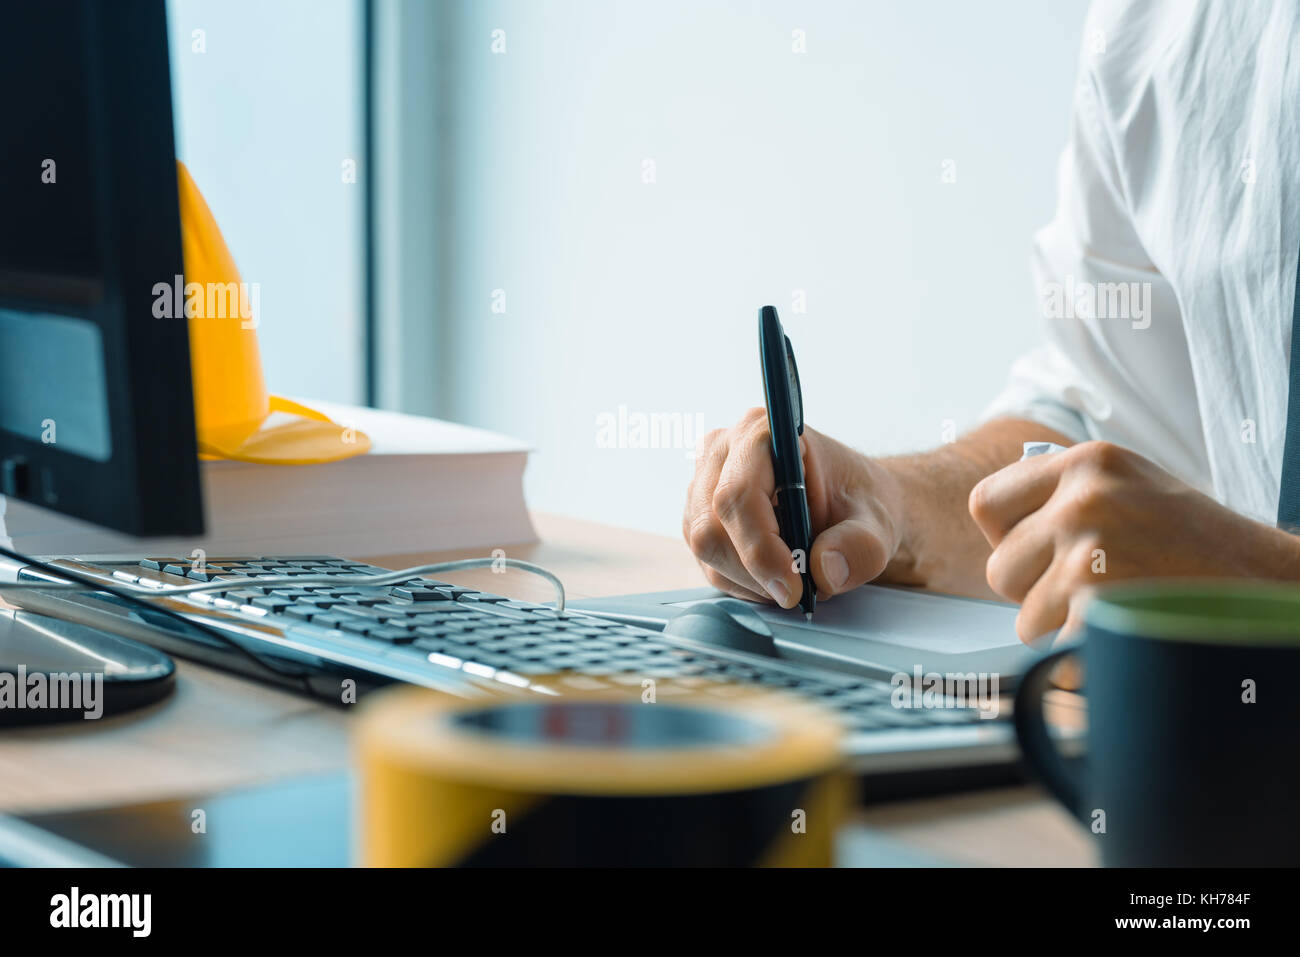 Interior design professional working on graphic tablet sketch pad in architecture studio office - Stock Image